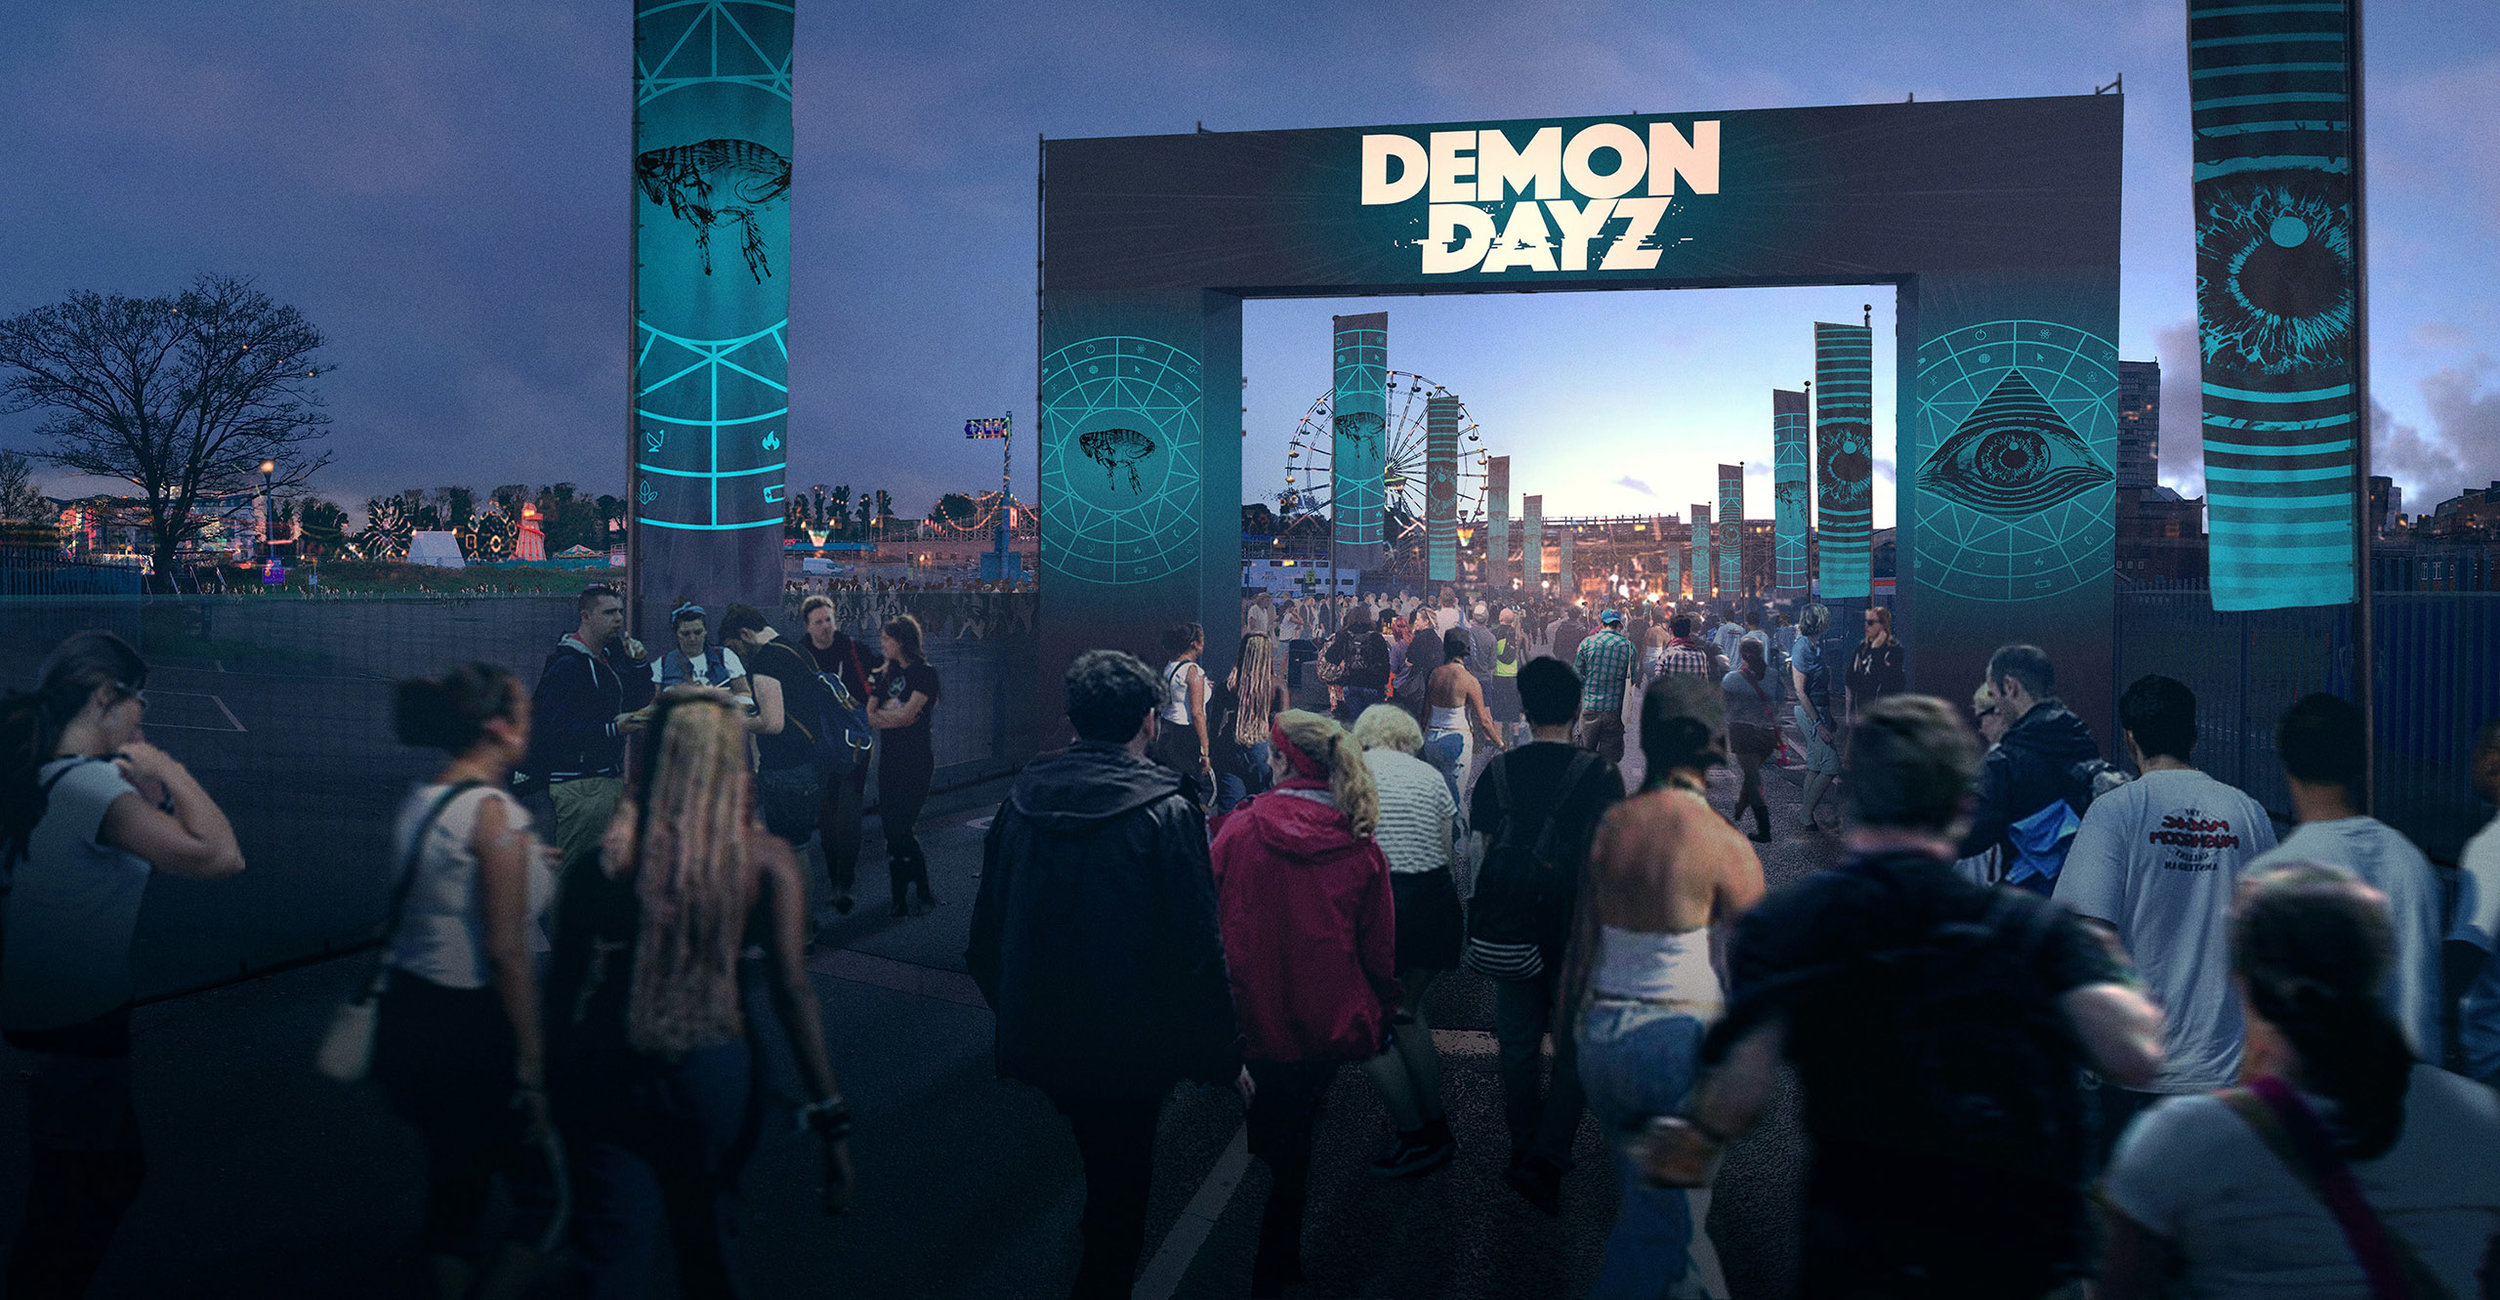 Demon Dayz Entrance.jpg